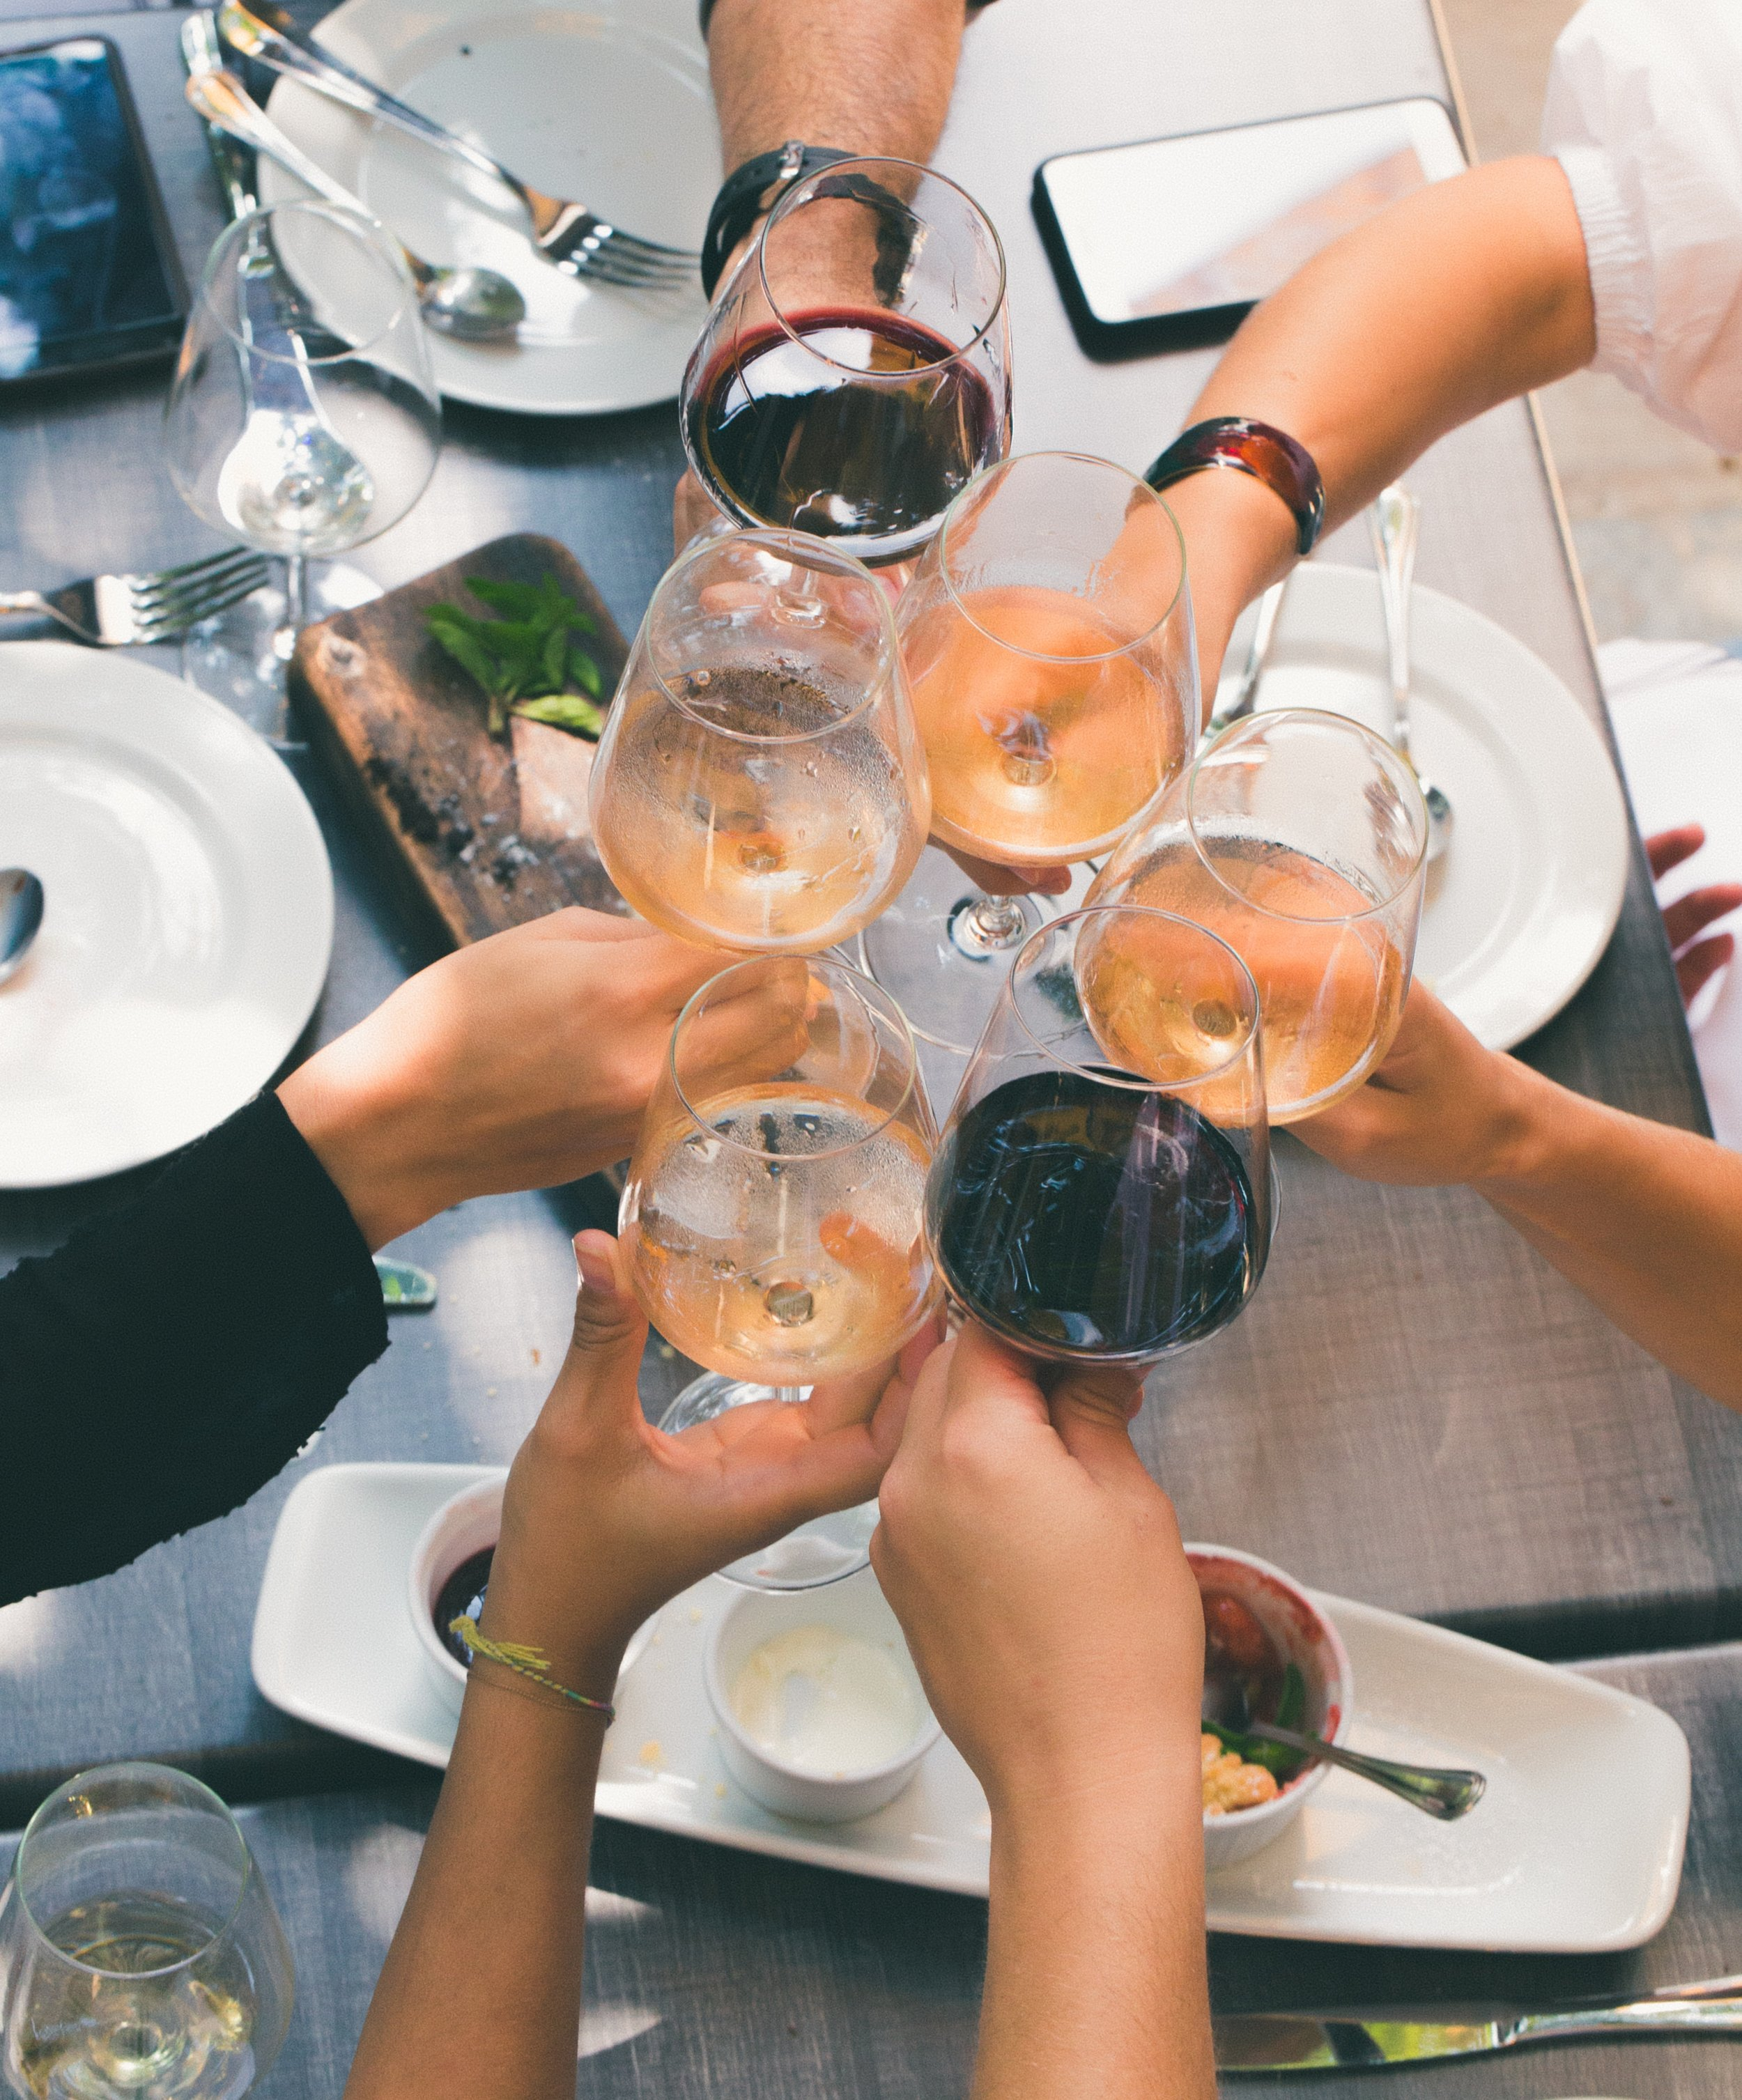 People celebrating with wine. Photo by andres chaparro on Pexels